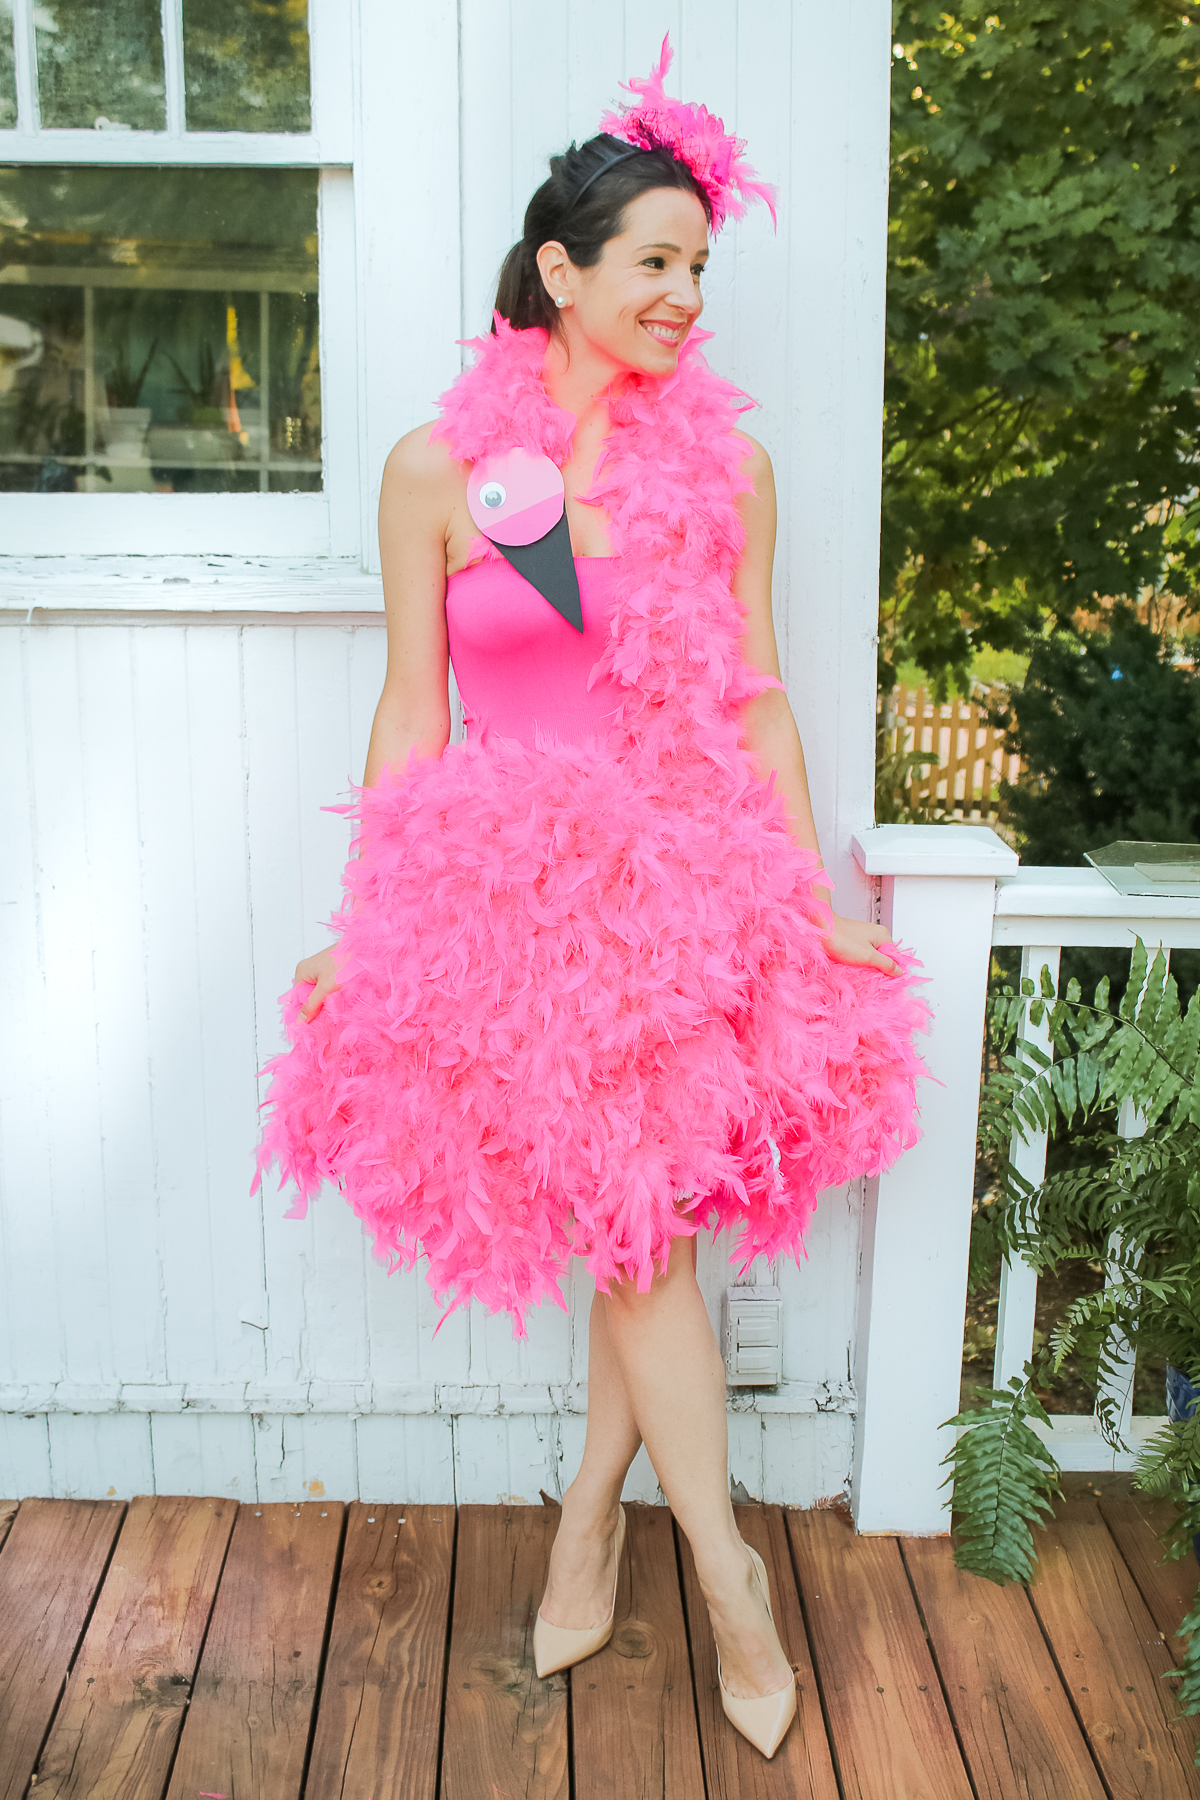 DIY flamingo costume by southern lifestyle blogger Stephanie Ziajka from Diary of a Debutante, DIY pink flamingo costume tutorial, flamingo Halloween costume, cute DIY Halloween costumes, diy costumes for adults